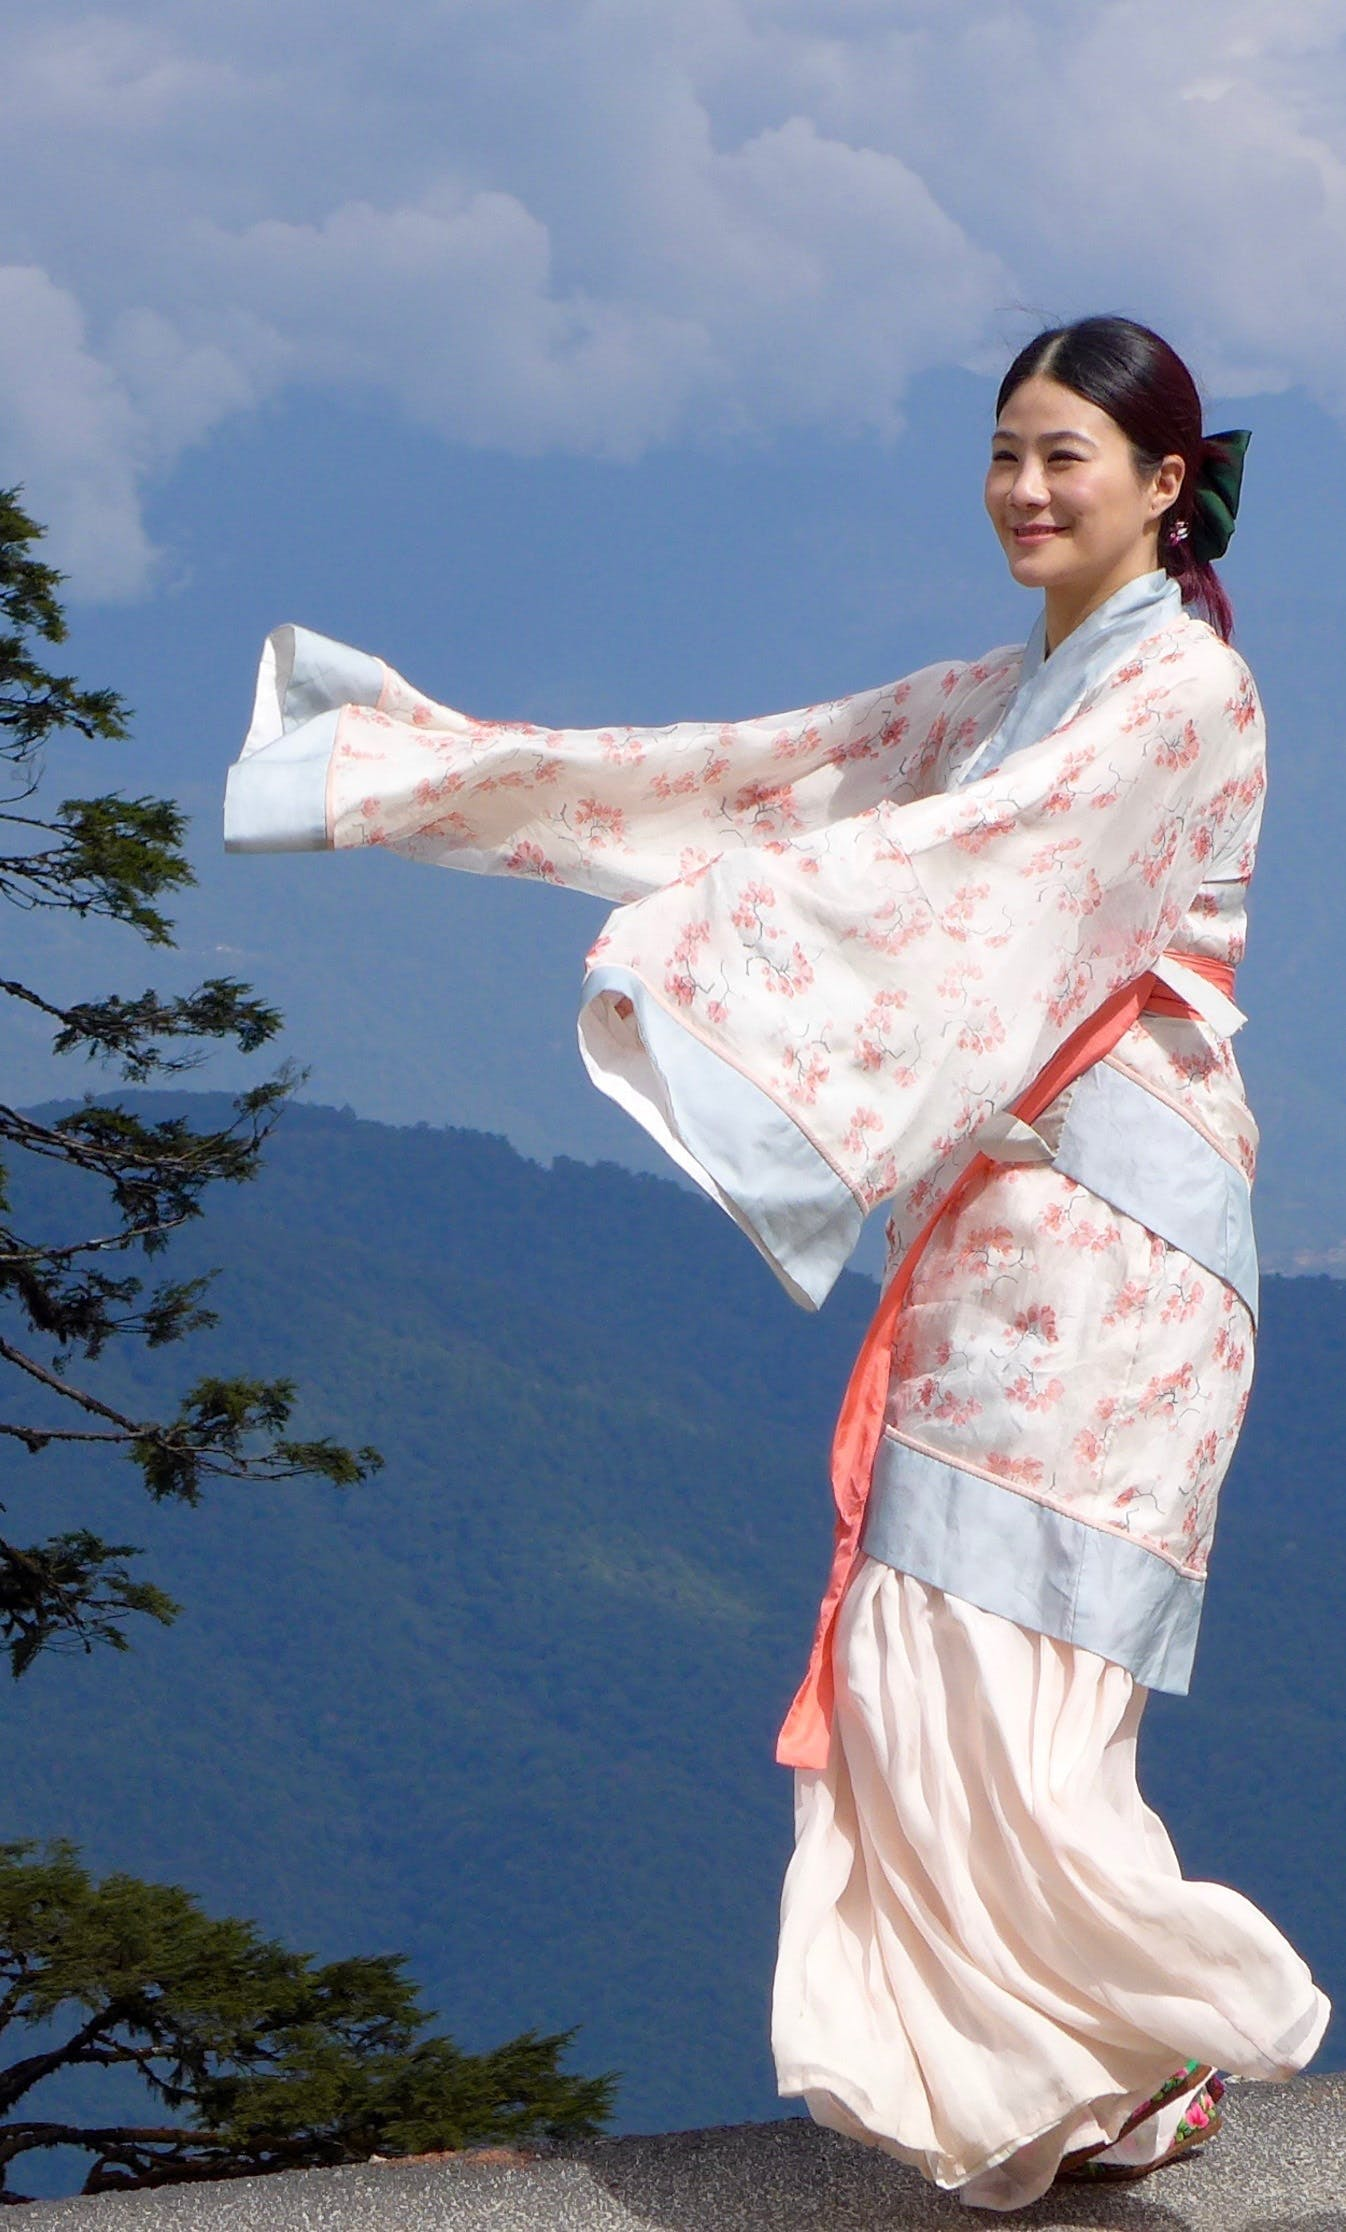 Free stock photo of woman, young, tradition, Japanese